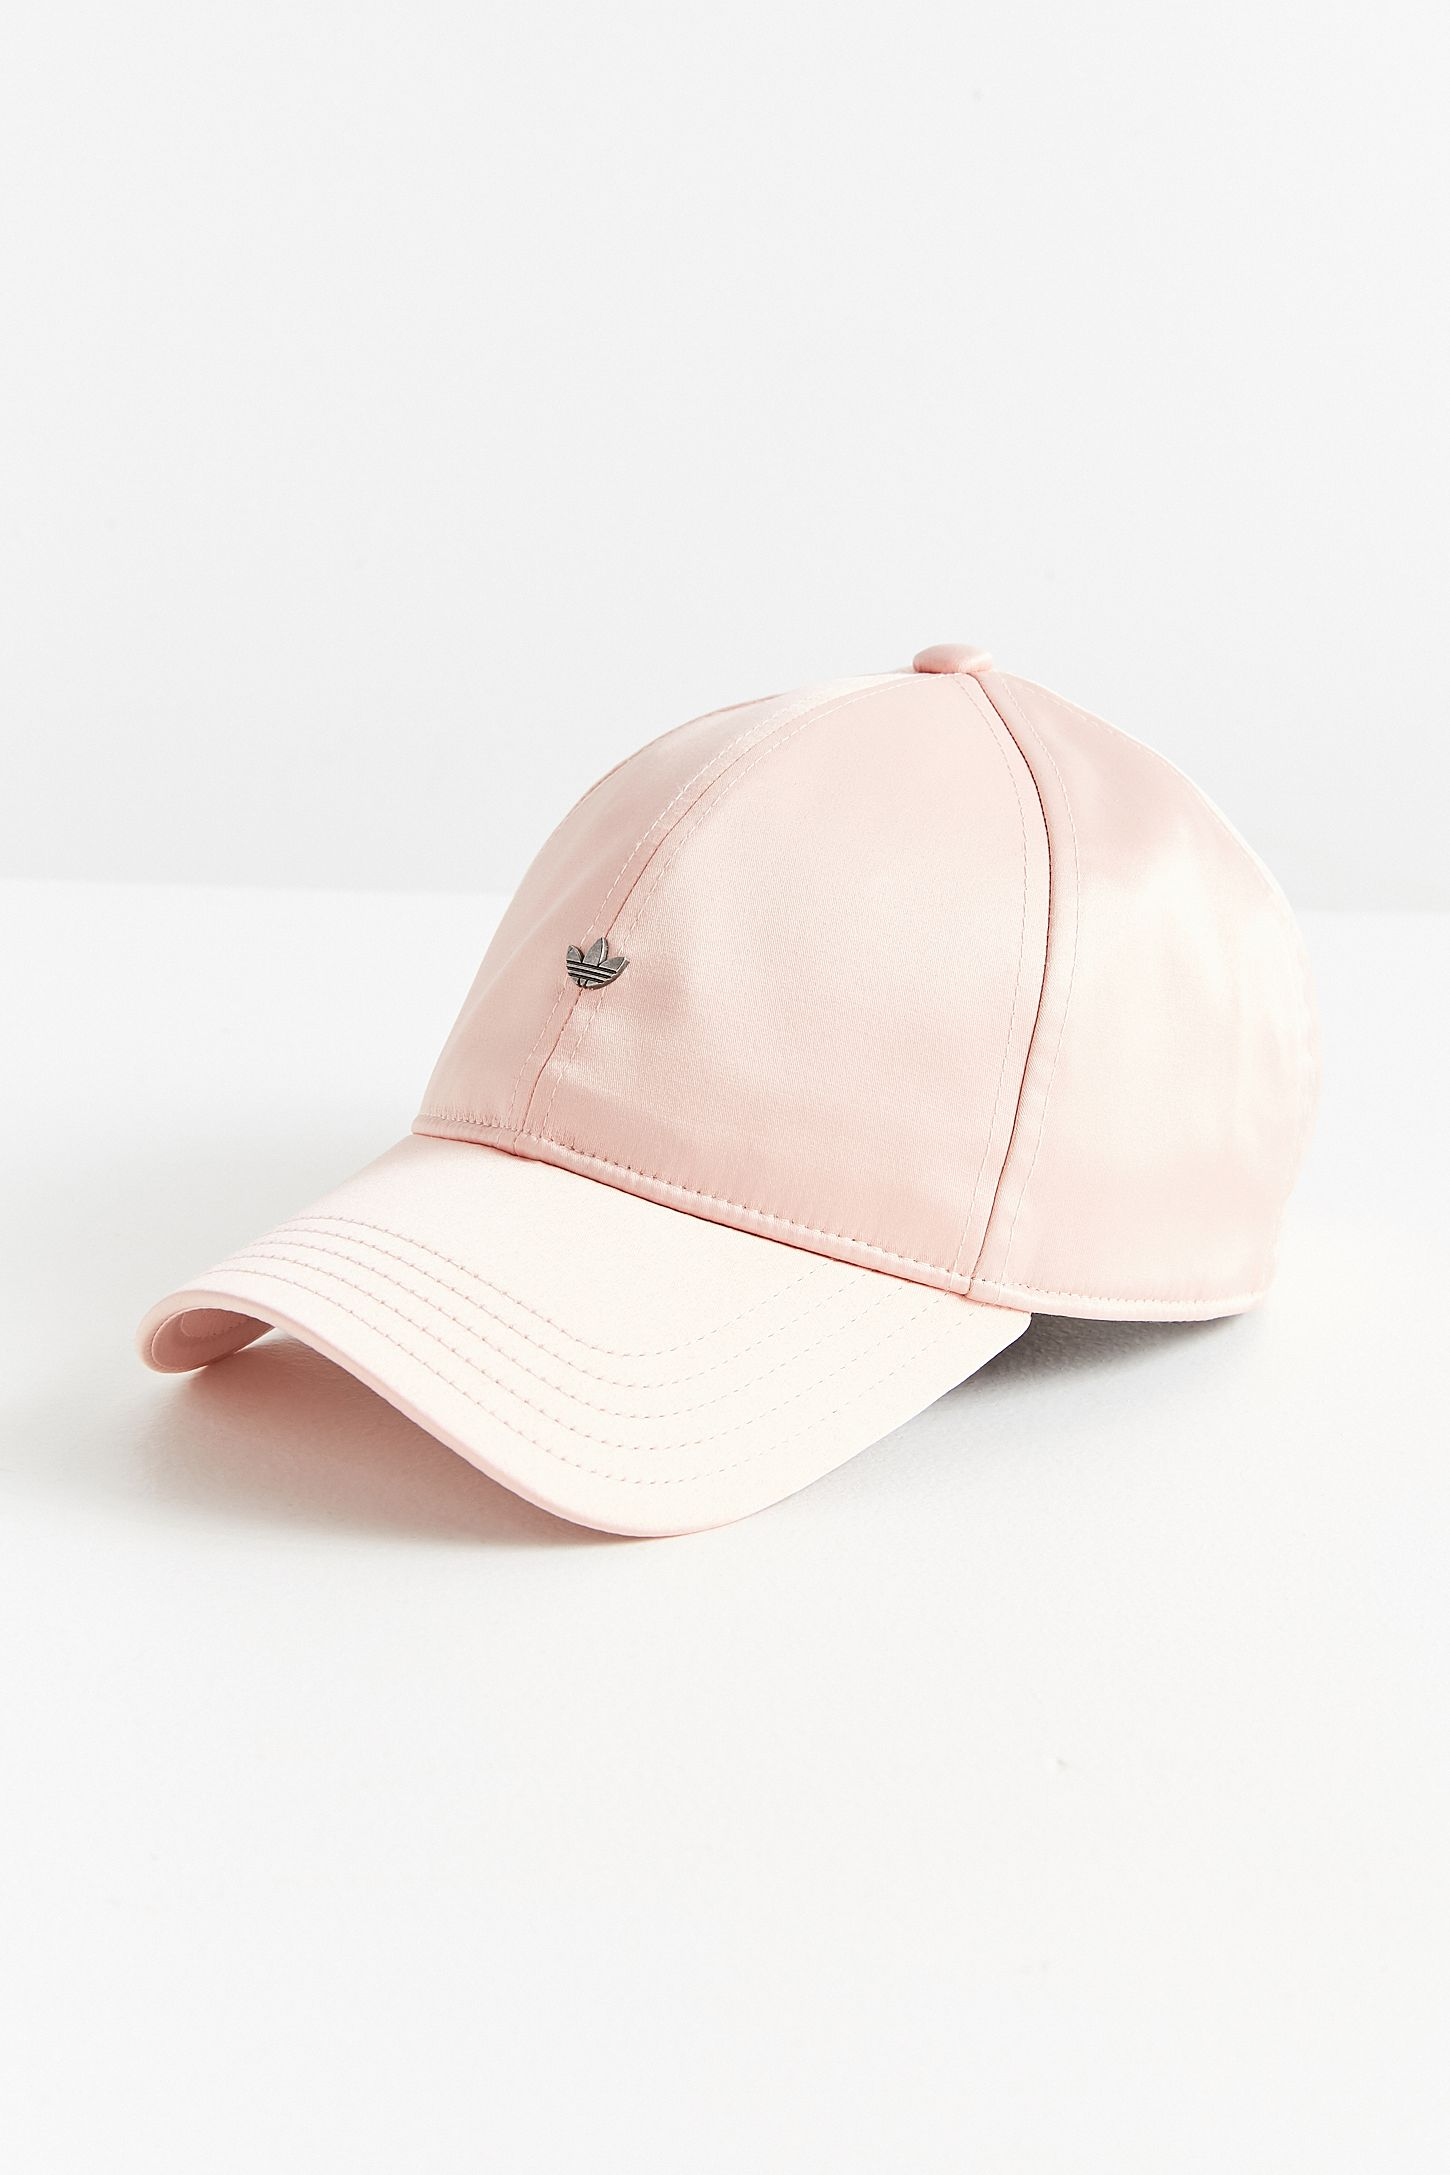 5c27f697a599a adidas Originals Satin Baseball Hat. Tap image to zoom. Hover to zoom.  Double Tap to Zoom